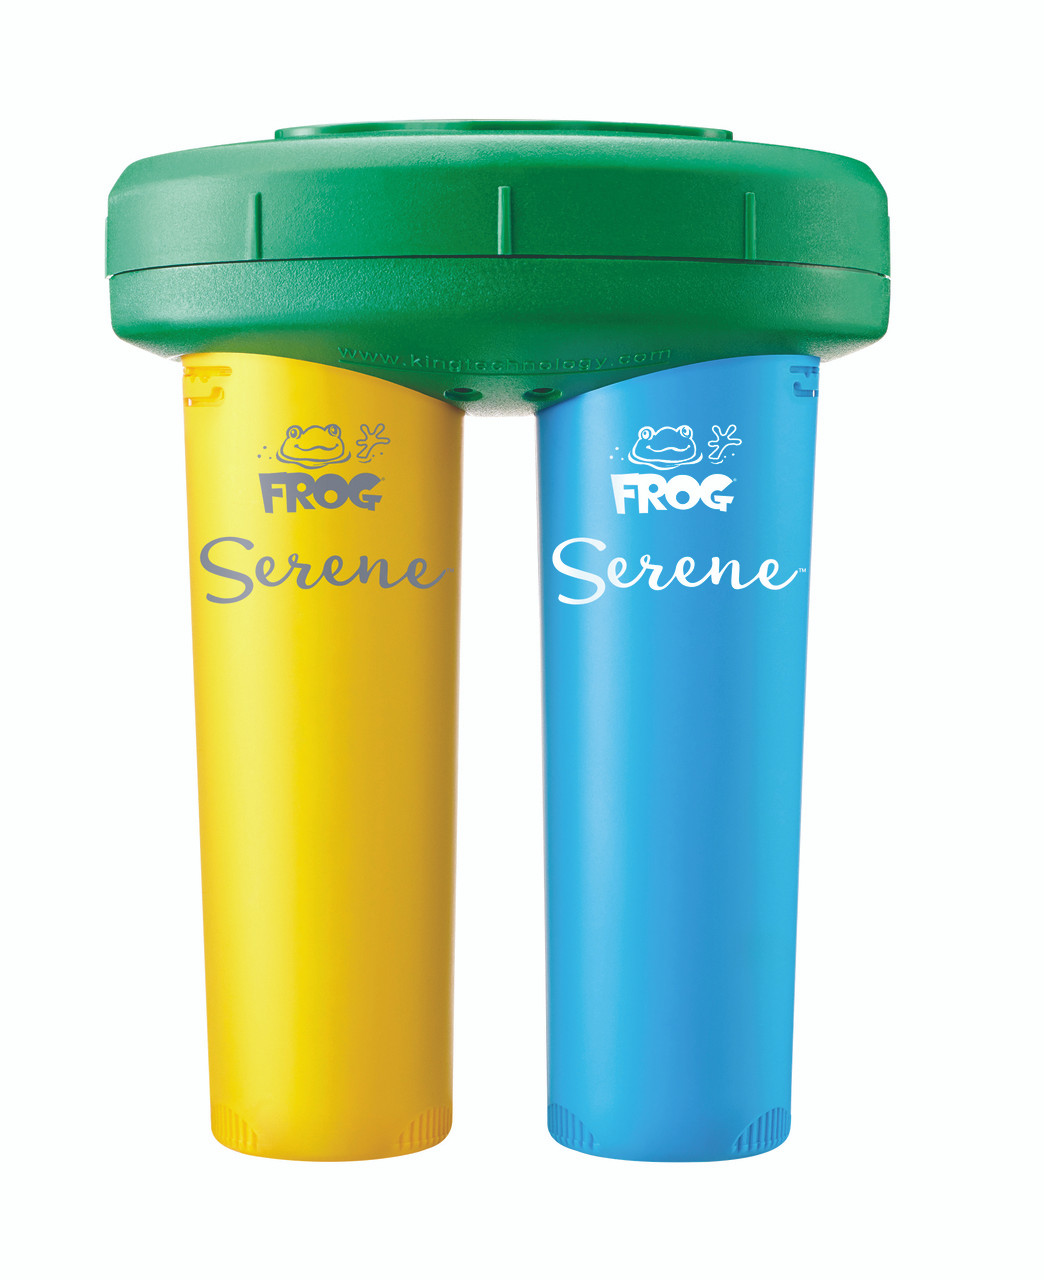 SPA FROG Replacement Cartridges 5 Pack 4 Bromine // 1 Mineral Frog Serene Cartridge Kit Plus Extra Bromine with Bonus Blue Spa Thermometer